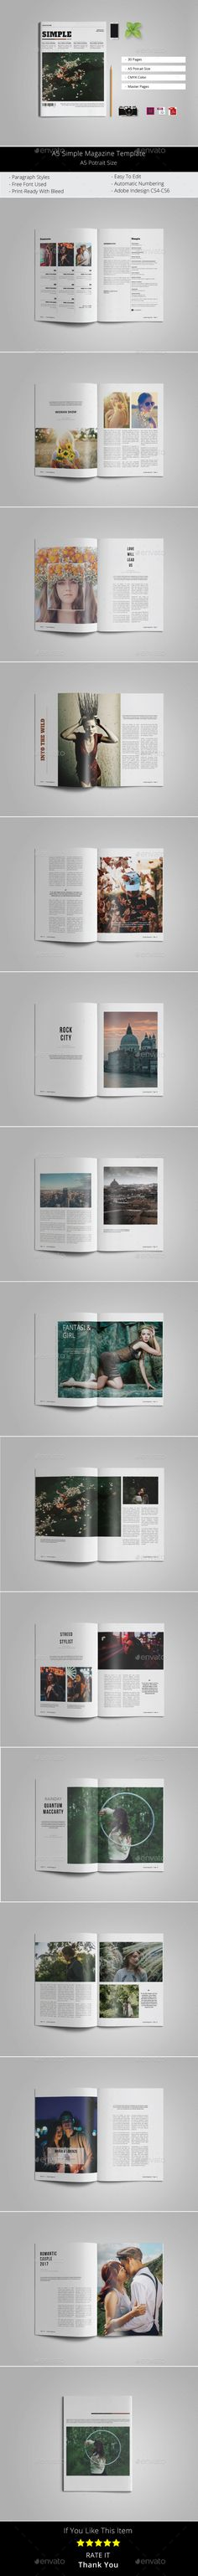 A5 Simple Magazine Template - Magazines Print Templates Download here : https://graphicriver.net/item/a5-simple-magazine-template/19538747?s_rank=14&ref=Al-fatih